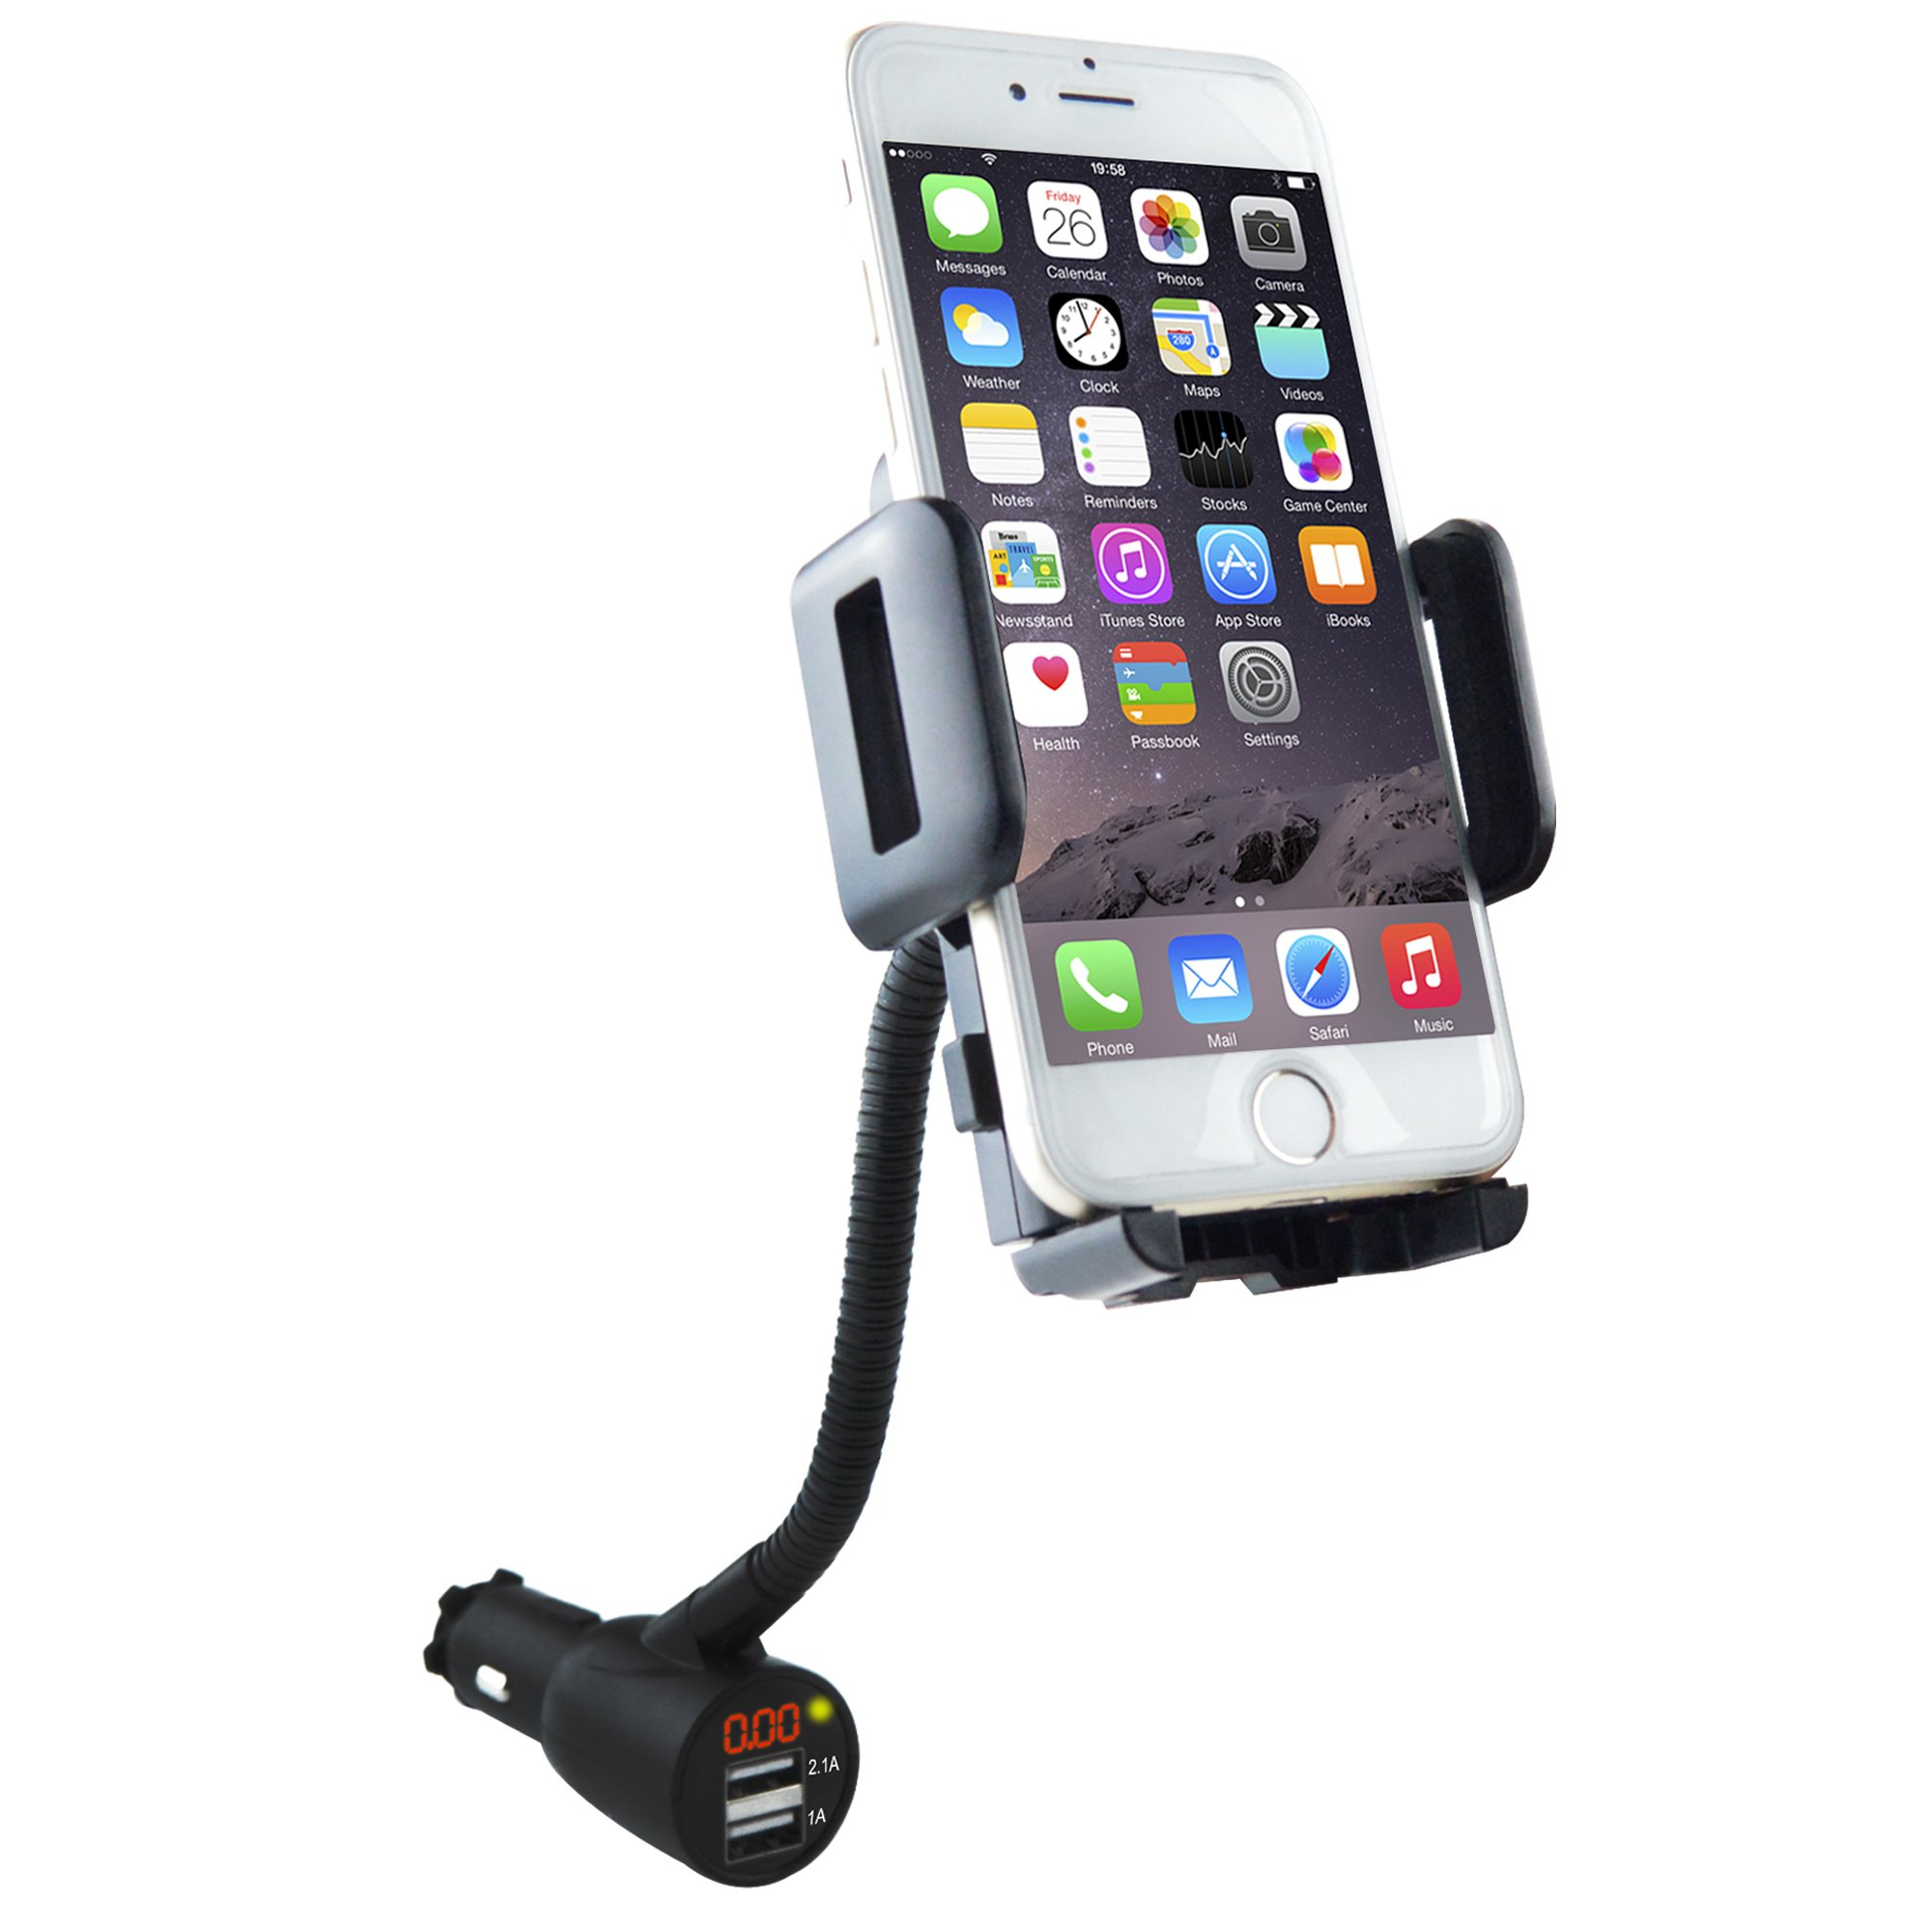 3-in-1 Cigarette Lighter Car Mount + Voltage Detector, SOAIY Car Mount Charger Holder Cradle w/Dual USB 3.1A Charger, Display Voltage Current Compatible with iPhone8 X 7 6s 6 5s Samsung S8 S7 S6 S5 by SOAIY (Image #1)